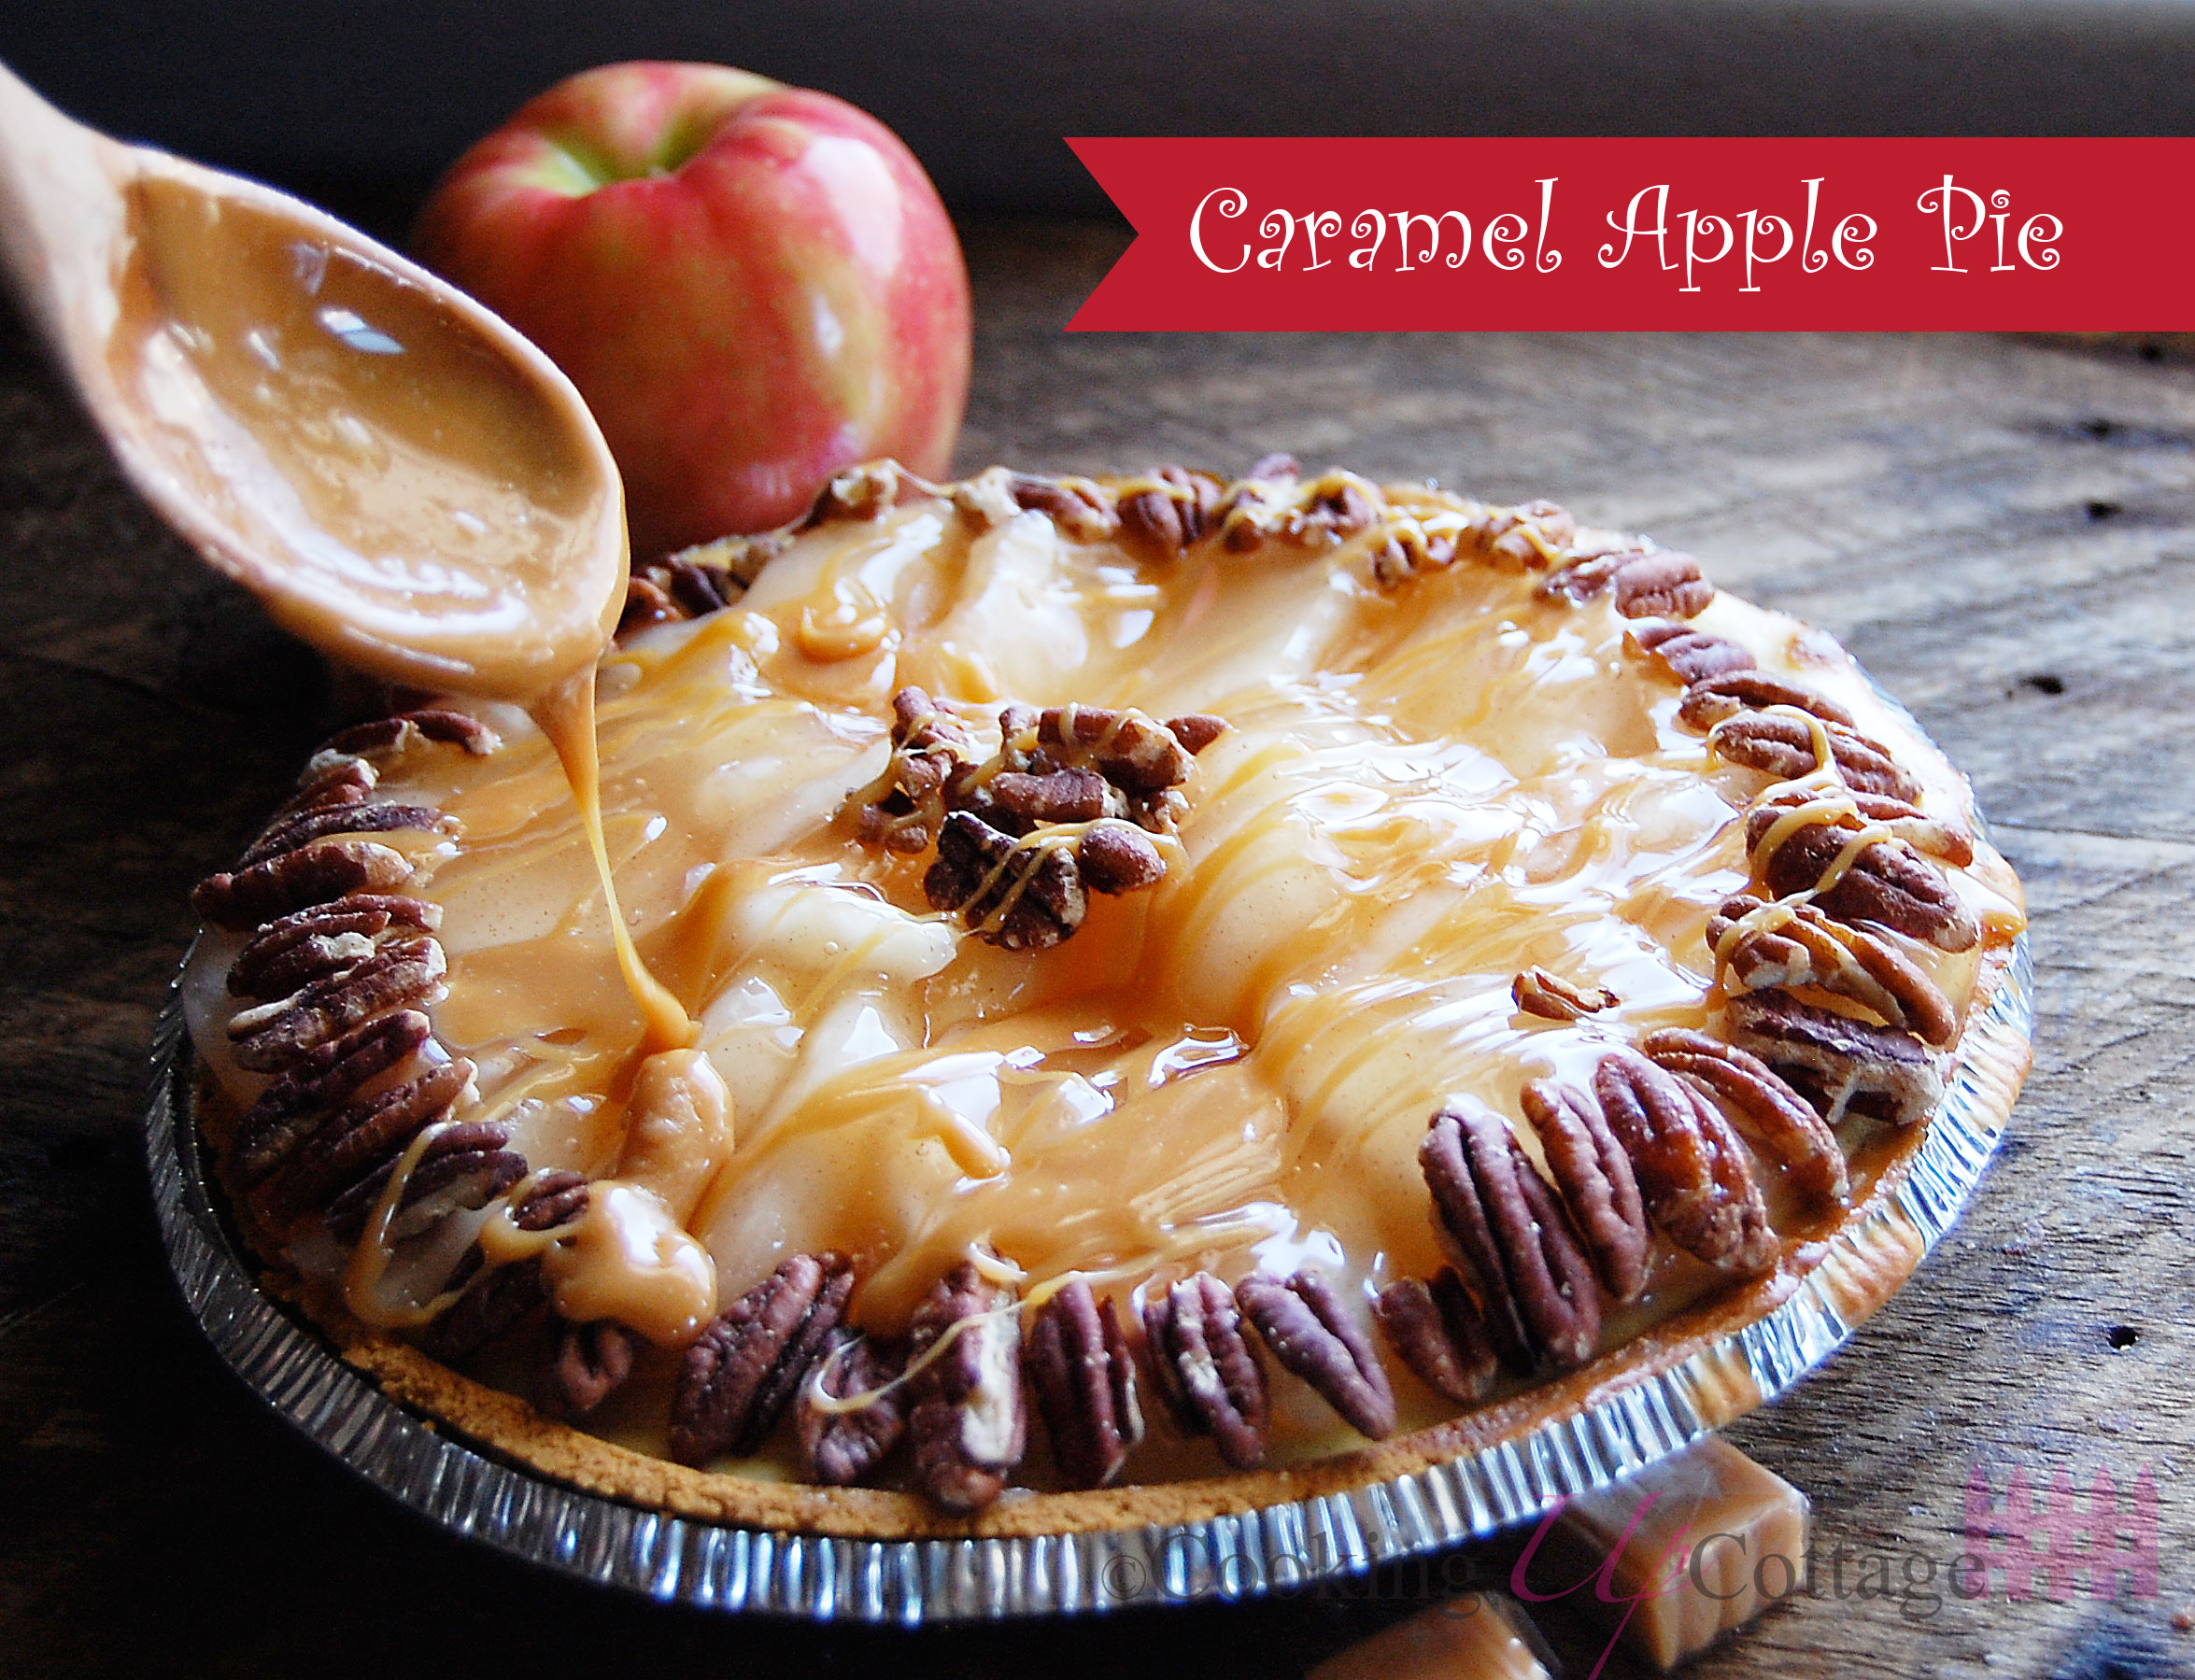 Caramel Apple Pie Cooking Up Cottage